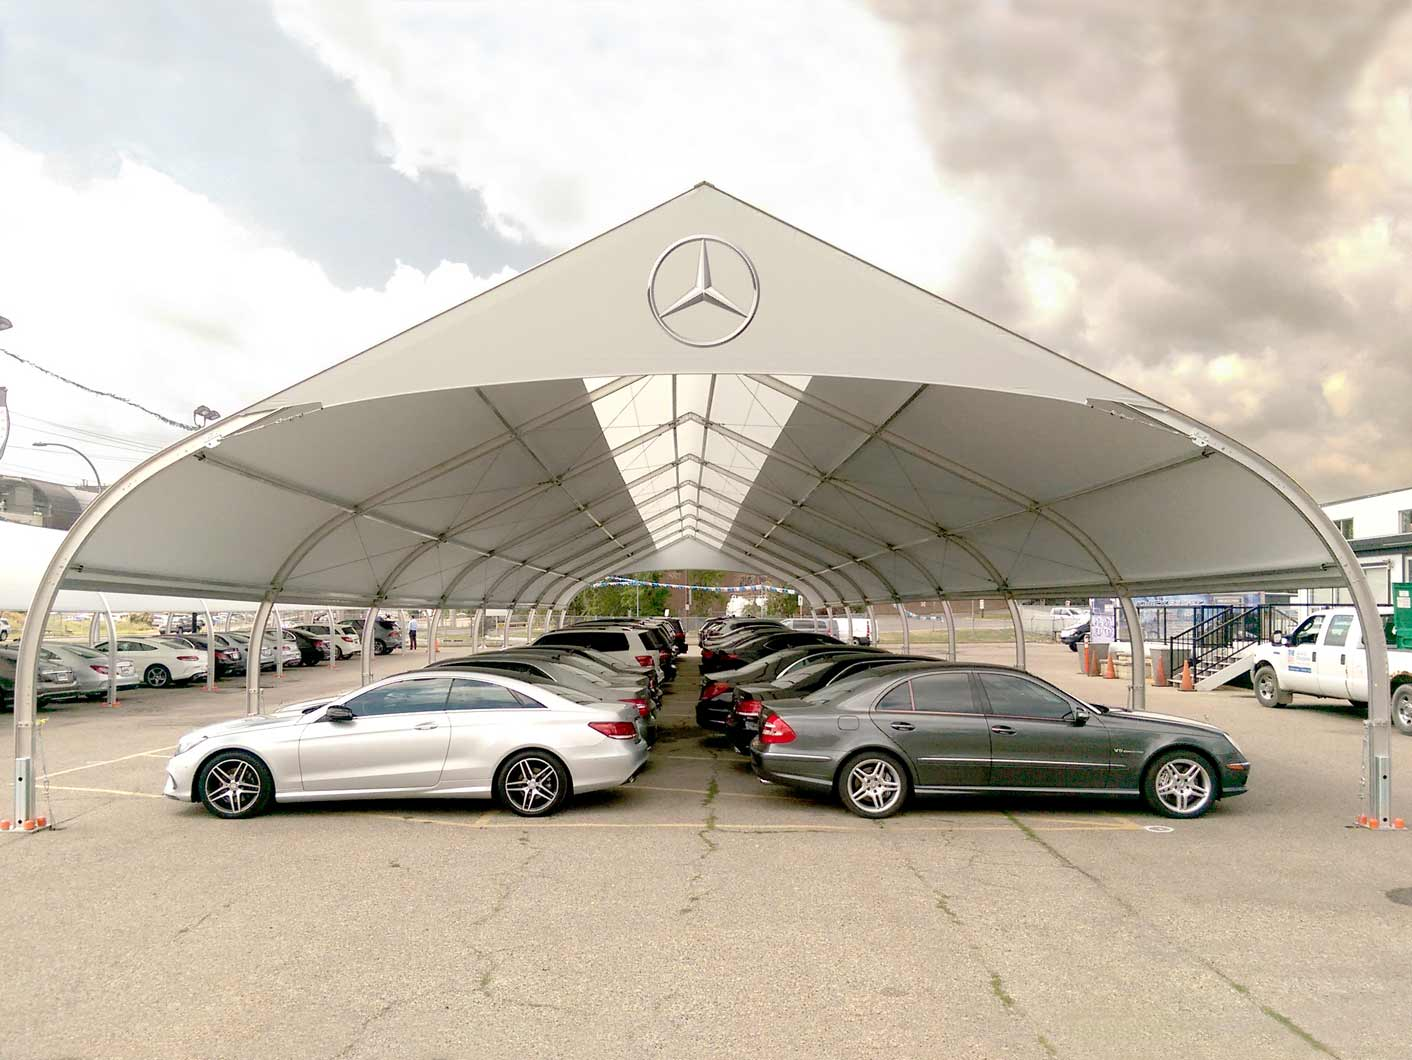 Hail Protection Car Cover >> Mercedes-Benz Express Series Vehicle Protection - Sprung Structures